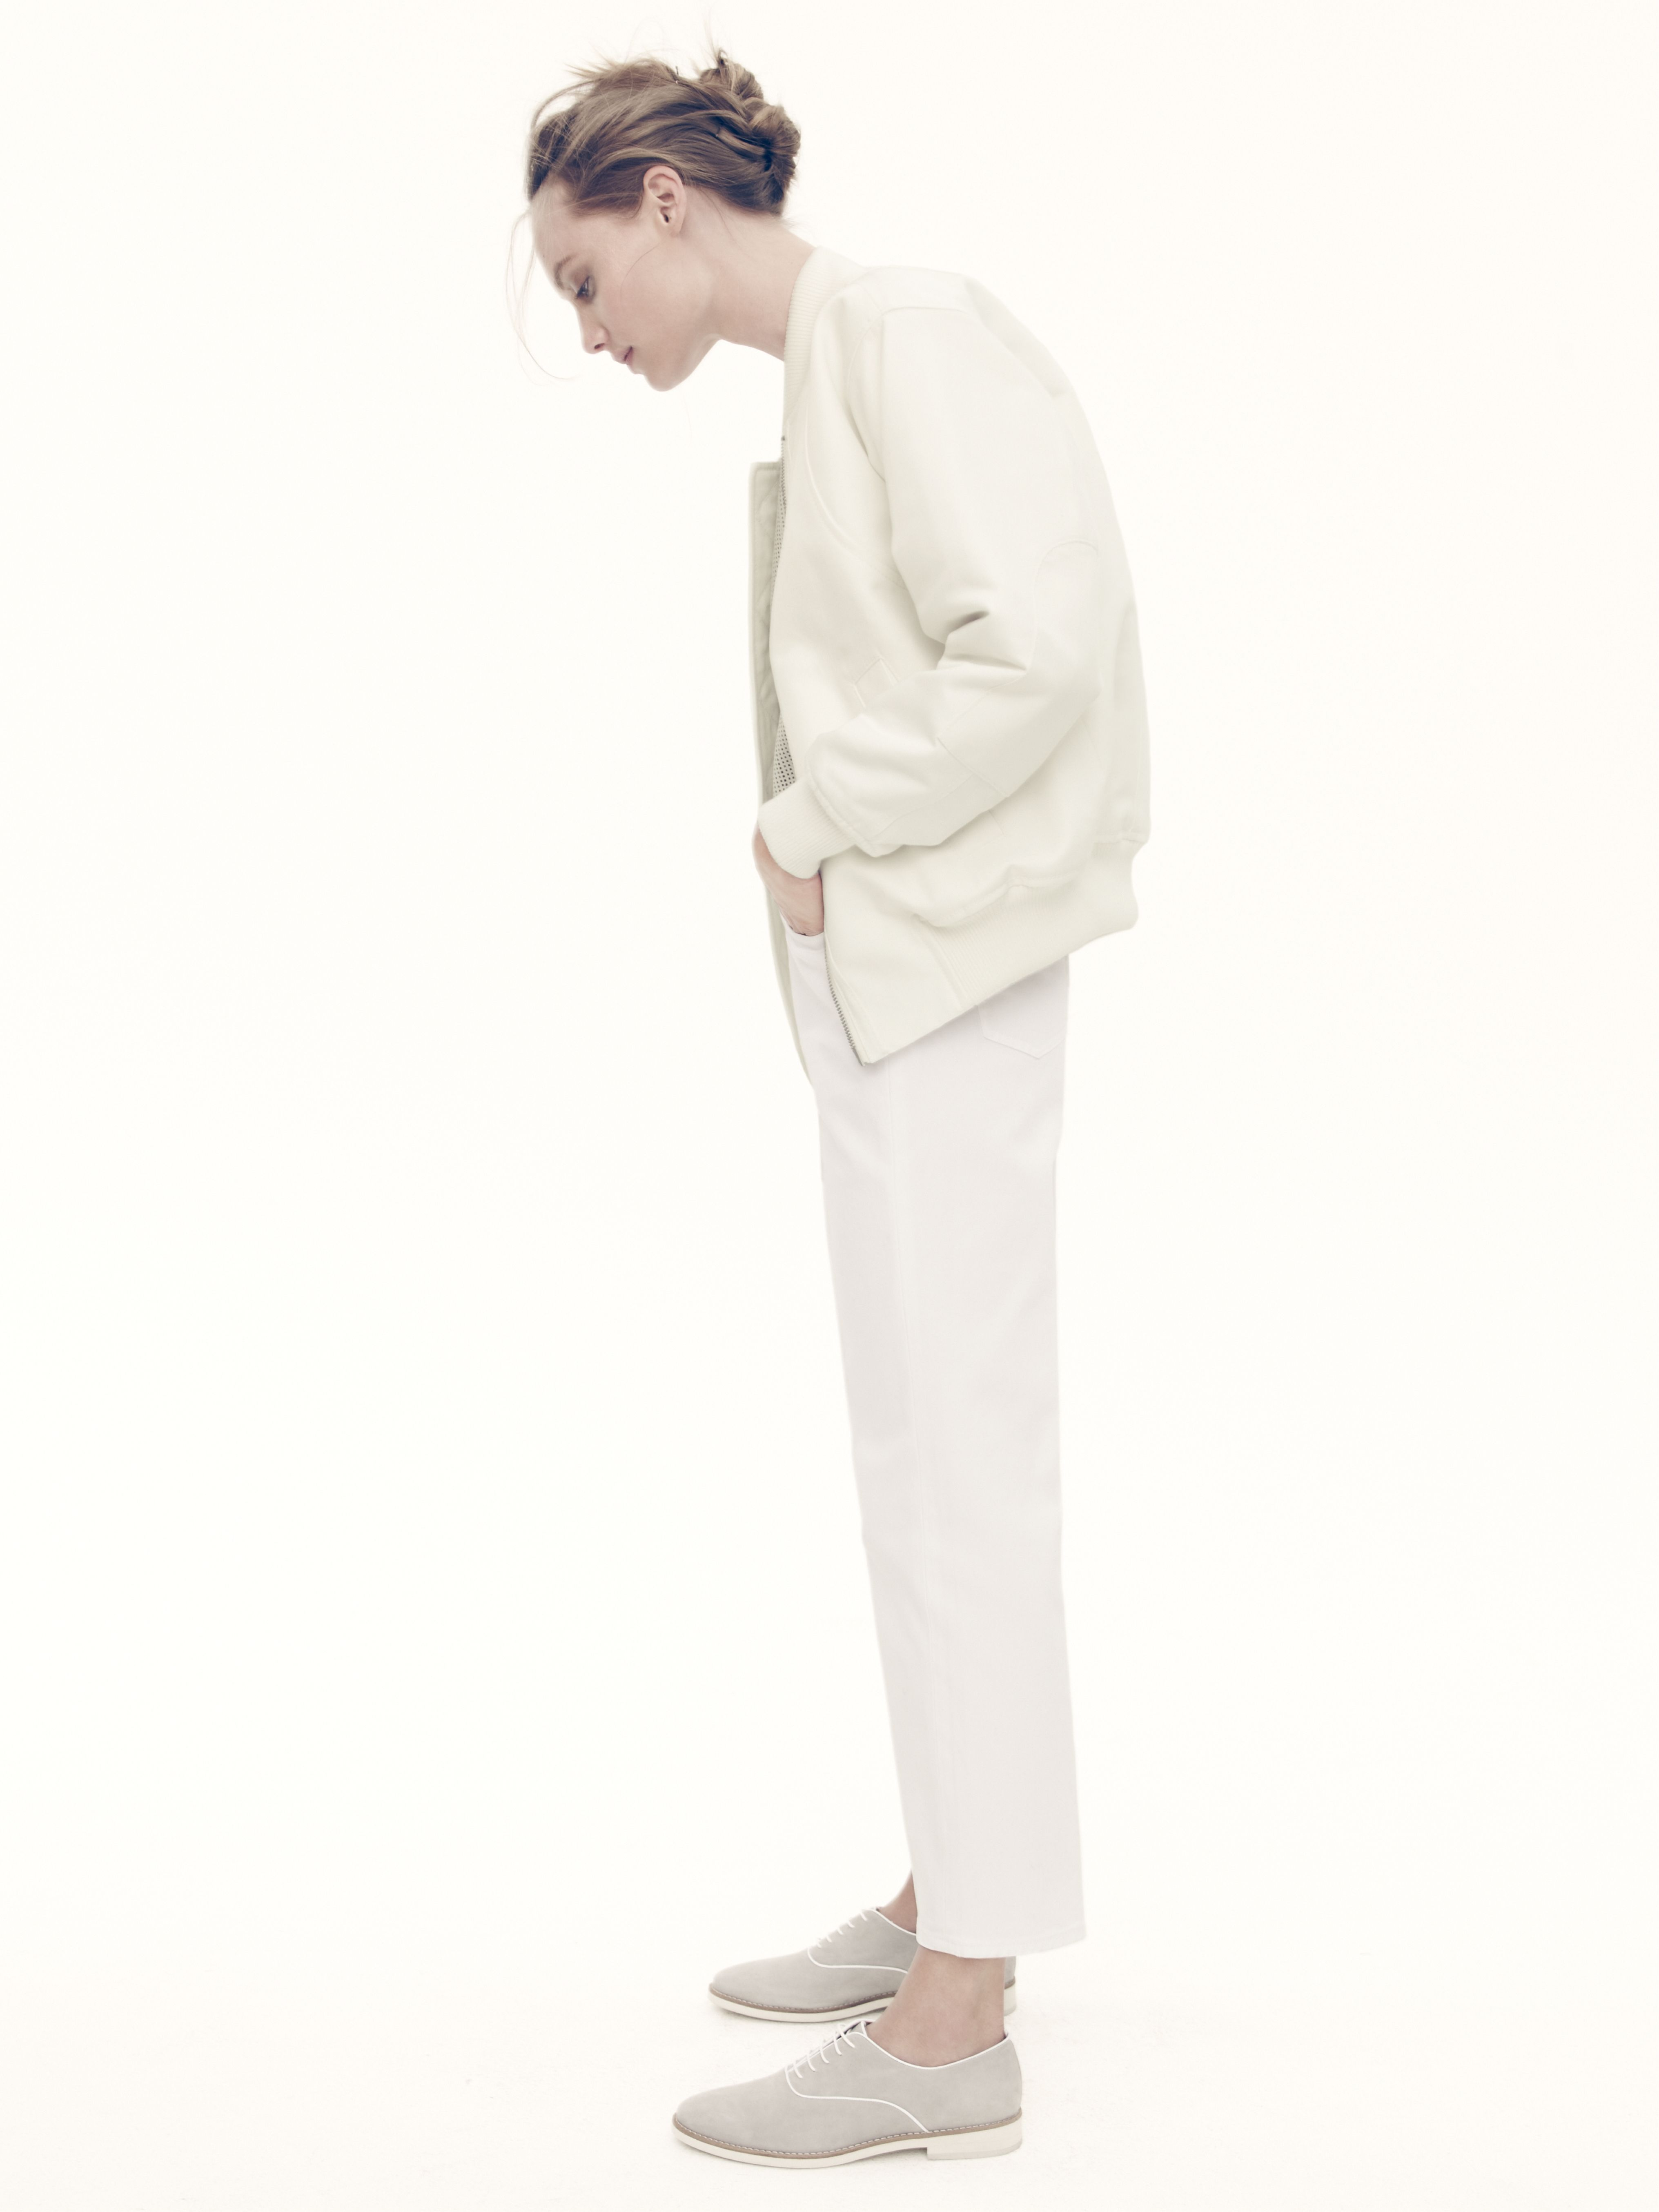 J.Crew Collection cotton bomber jacket, Collection perforated leather shell, wide-leg crop jean in white, and piped suede loafers.